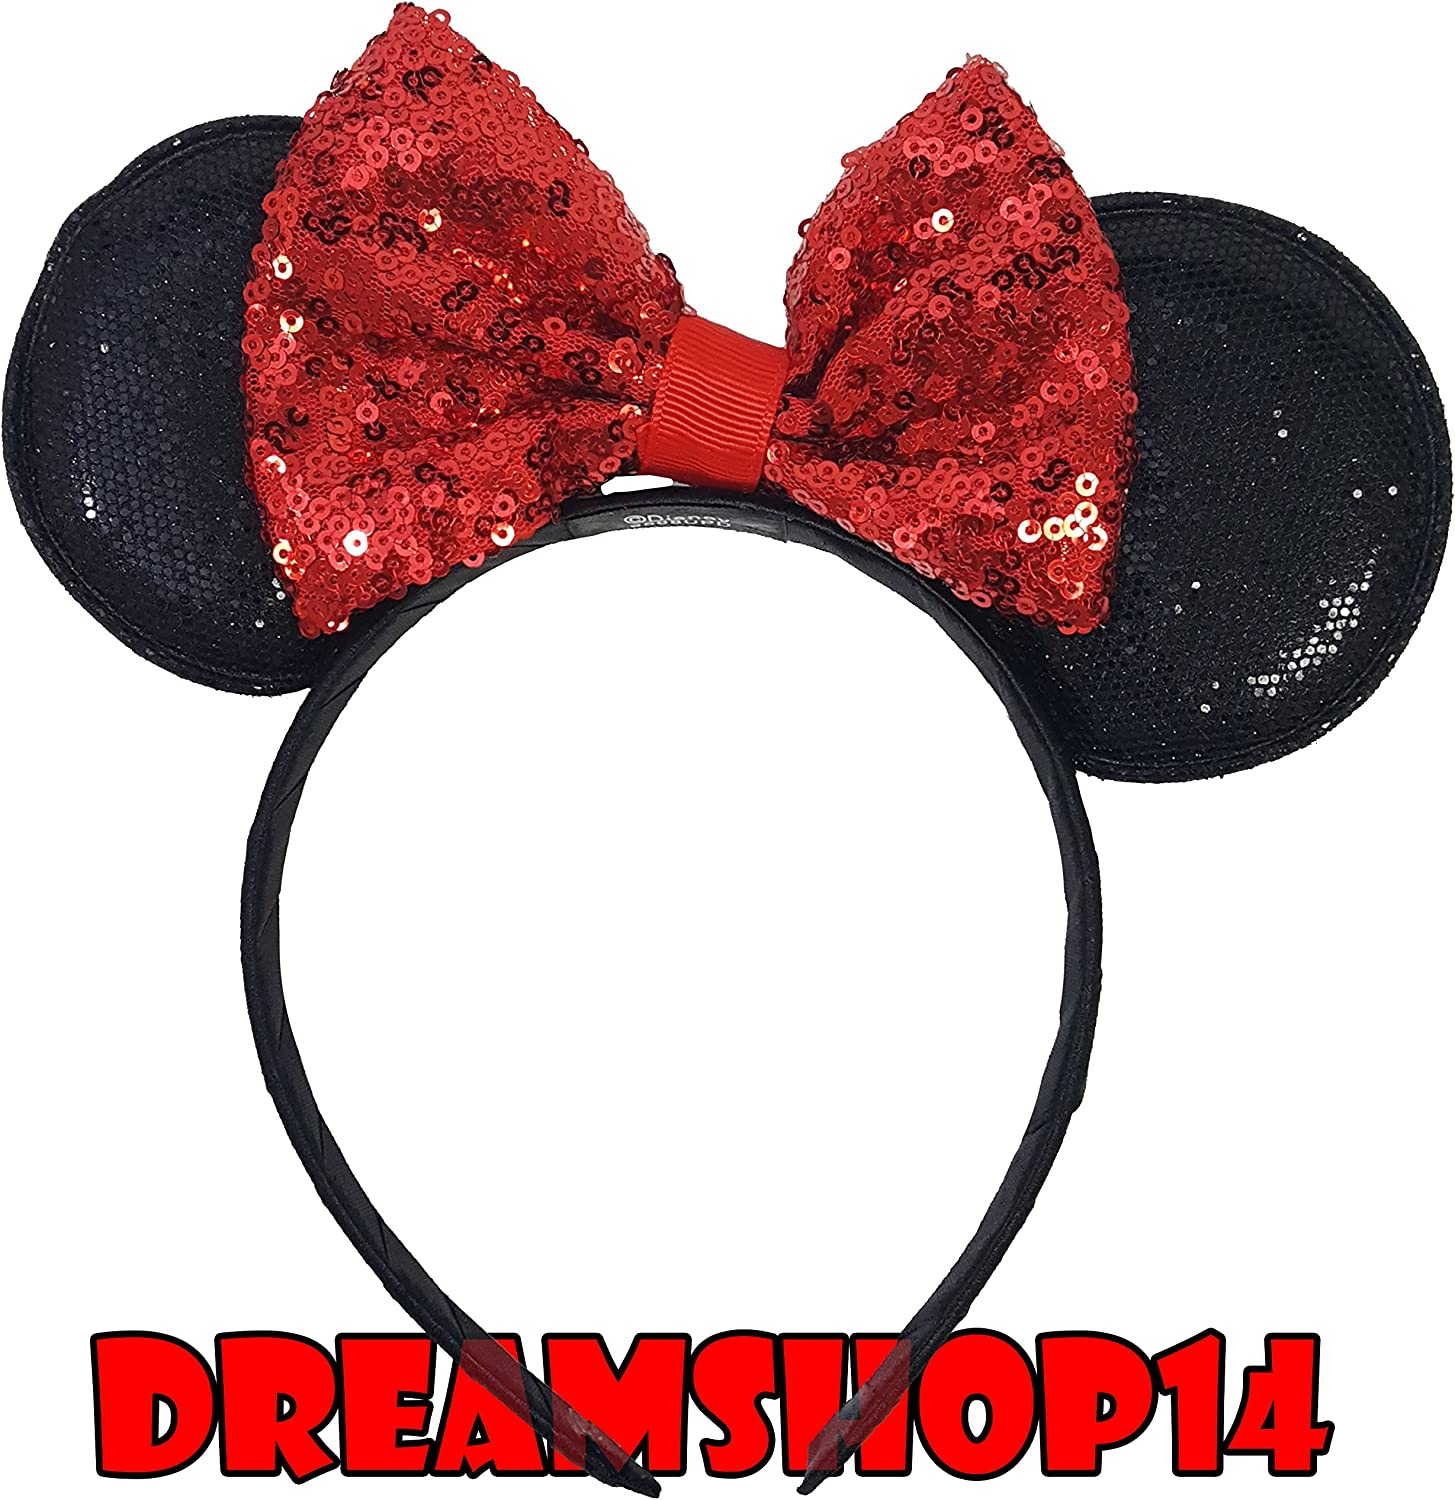 Minnie Mickey Mouse Ears 12 pcs Headbands Black Red Sequin Bow USA seller